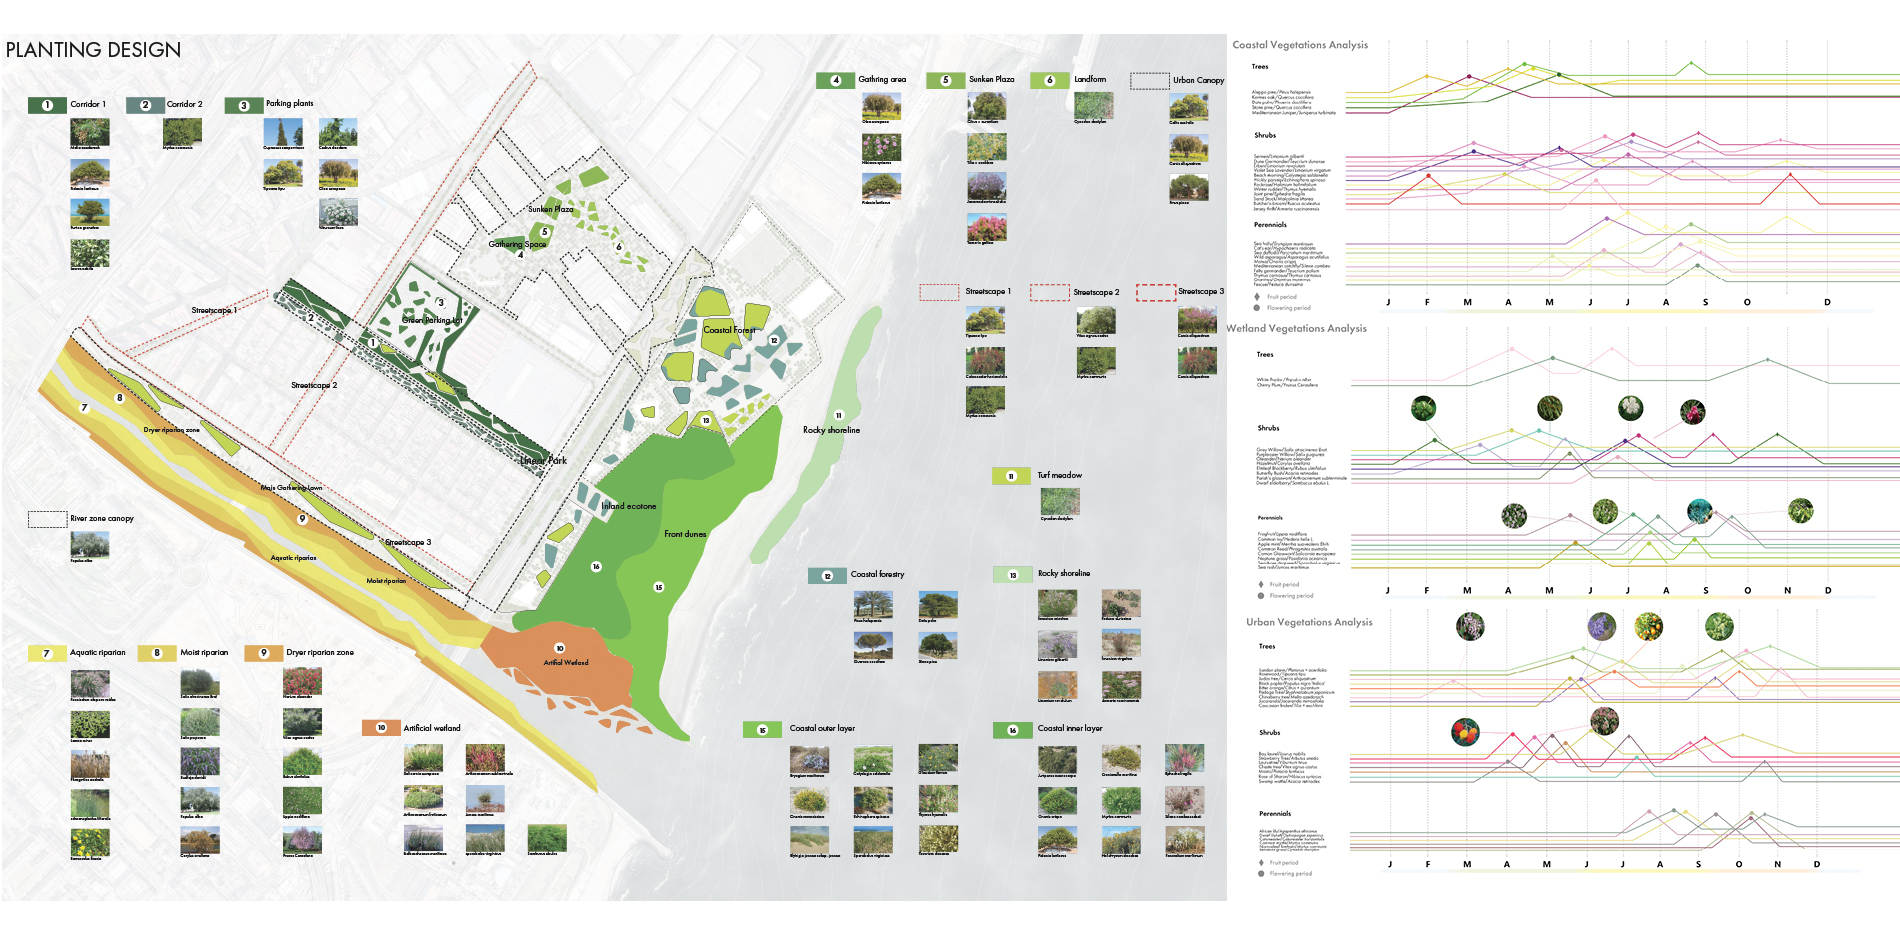 Planting Plans with Vegetation Analysis